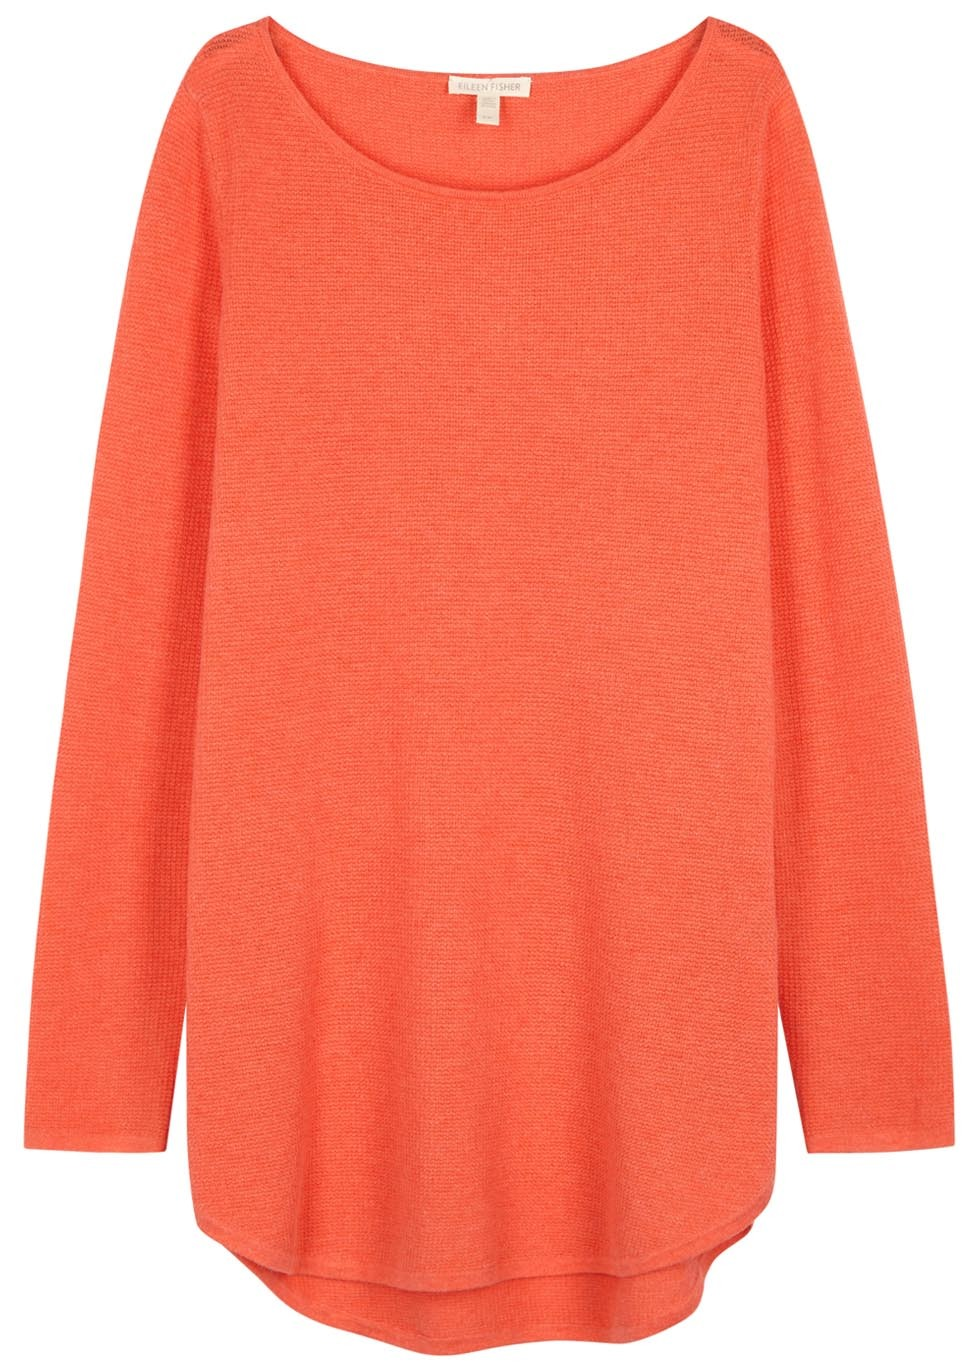 Coral Waffle Knit Cotton Blend Jumper - neckline: round neck; pattern: plain; length: below the bottom; style: standard; predominant colour: coral; occasions: casual; fibres: cotton - mix; fit: loose; sleeve length: long sleeve; sleeve style: standard; texture group: knits/crochet; pattern type: knitted - fine stitch; season: s/s 2016; wardrobe: highlight